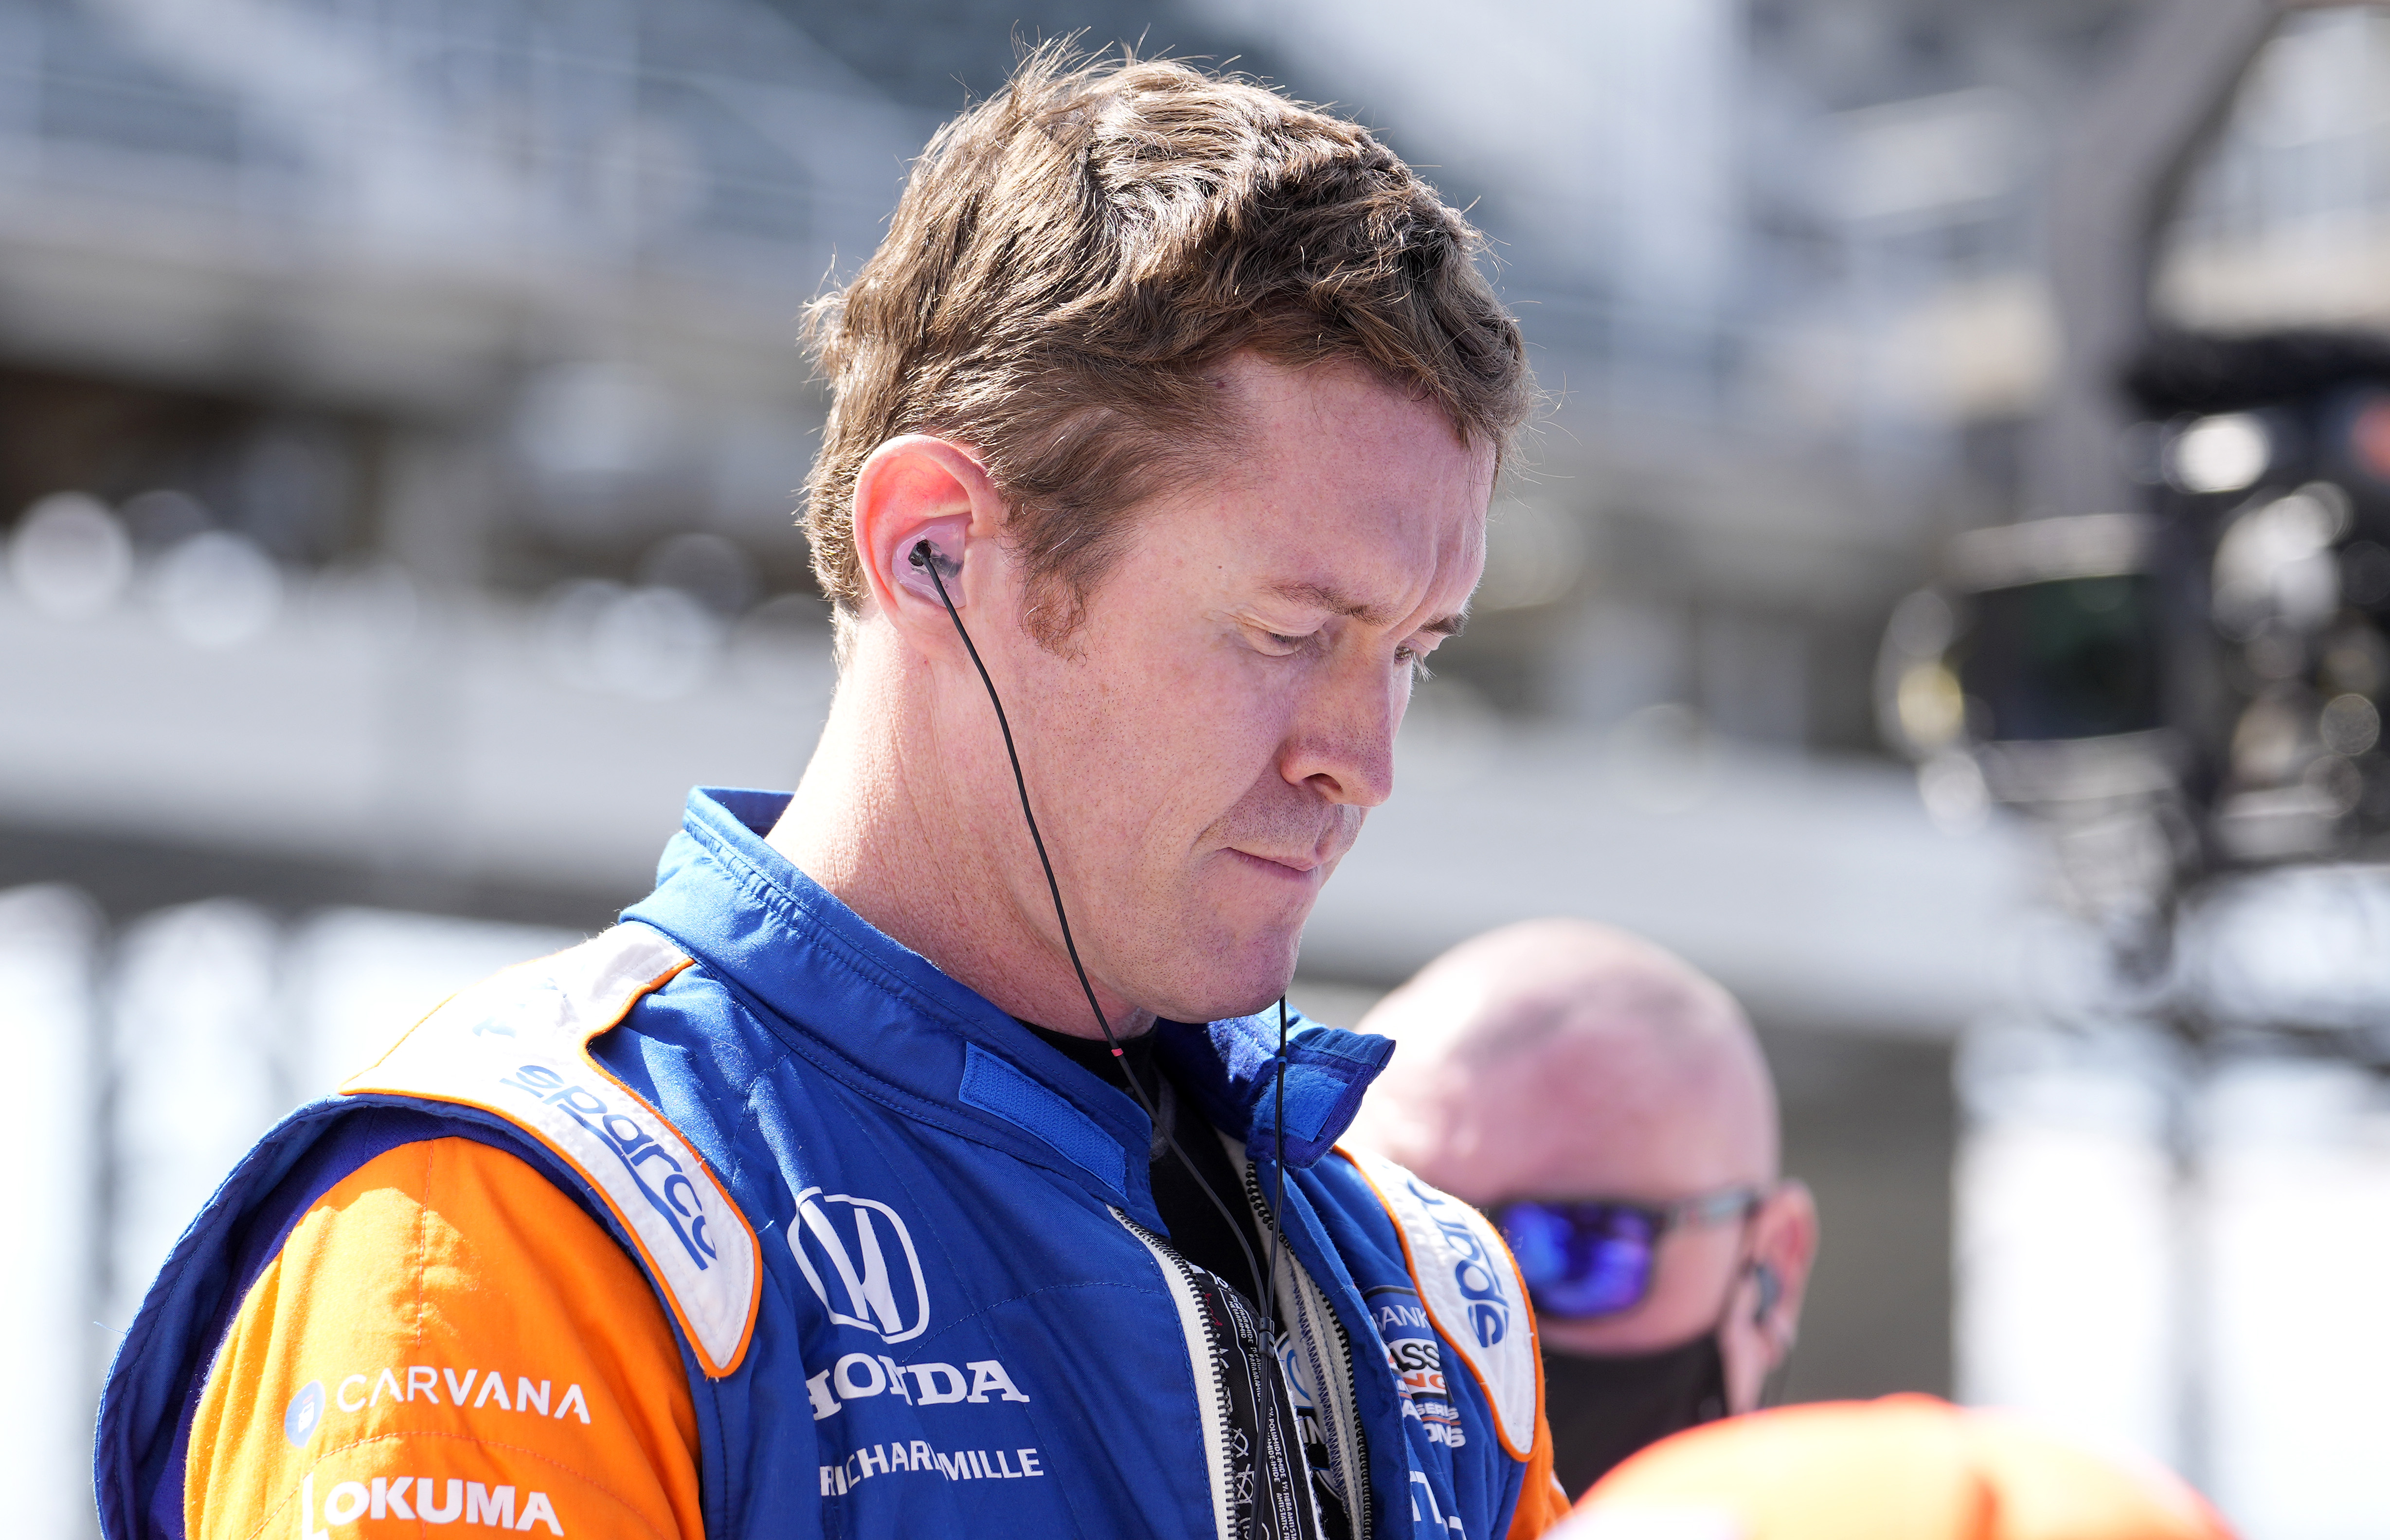 May 14, 2021; Indianapolis, IN, USA; Indy Series driver Scott Dixon (9) during qualifying for the GMR Grand Prix at the Indianapolis Motor Speedway. Mandatory Credit: Mike Dinovo-USA TODAY Sports